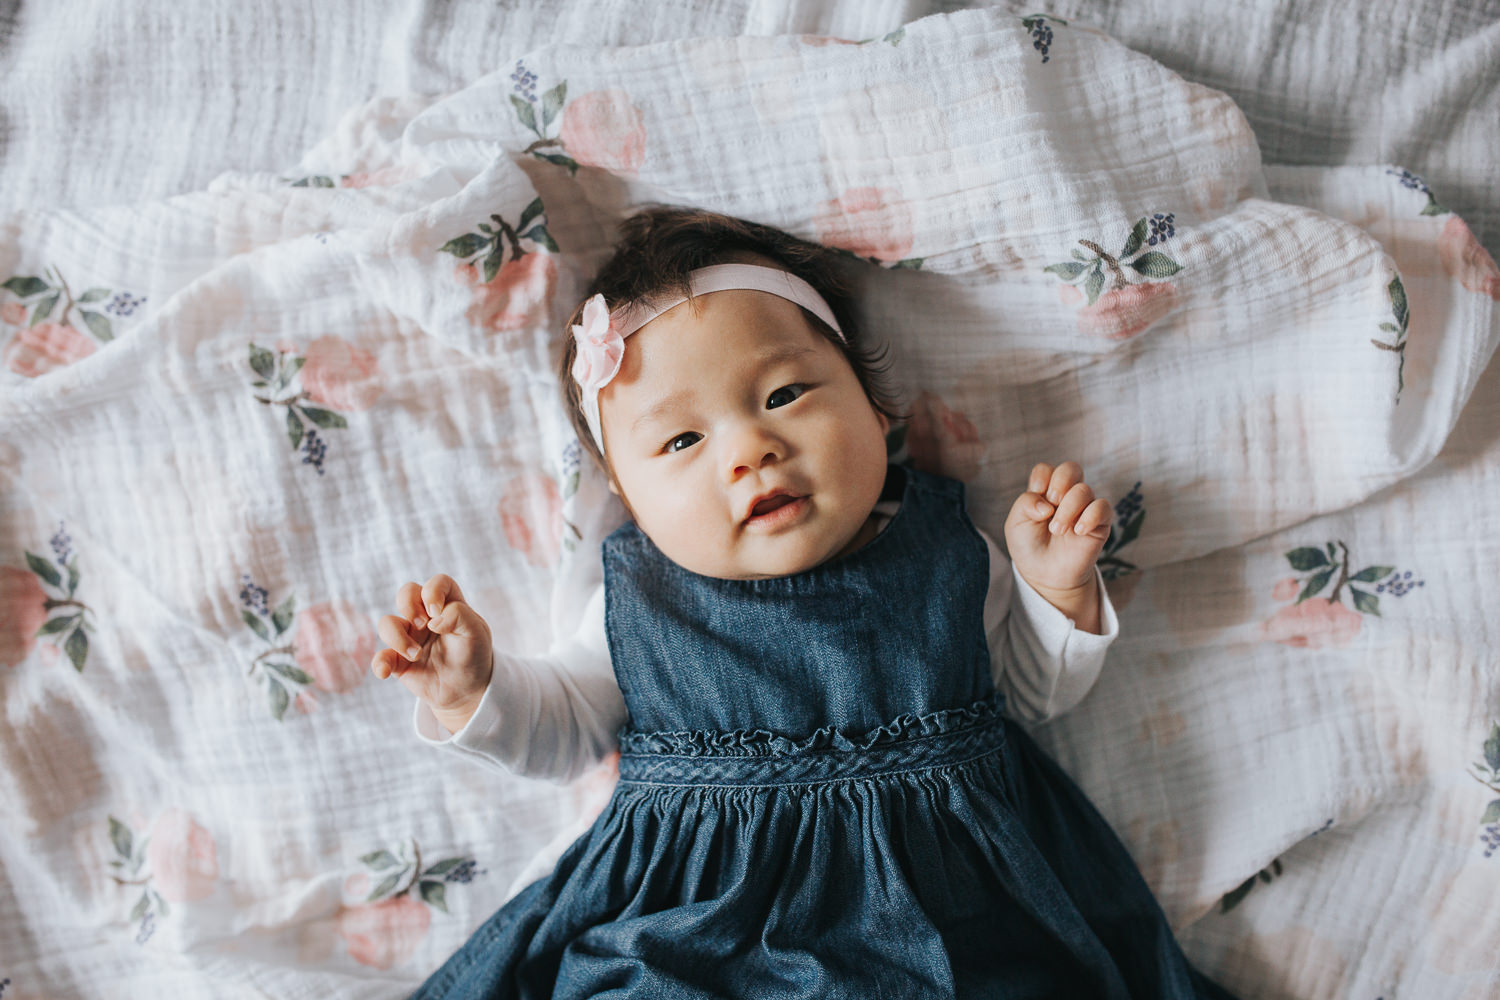 3 month old baby girl in blue dress lying on floral blanket looking at camera -Newmarket Lifestyle Photography